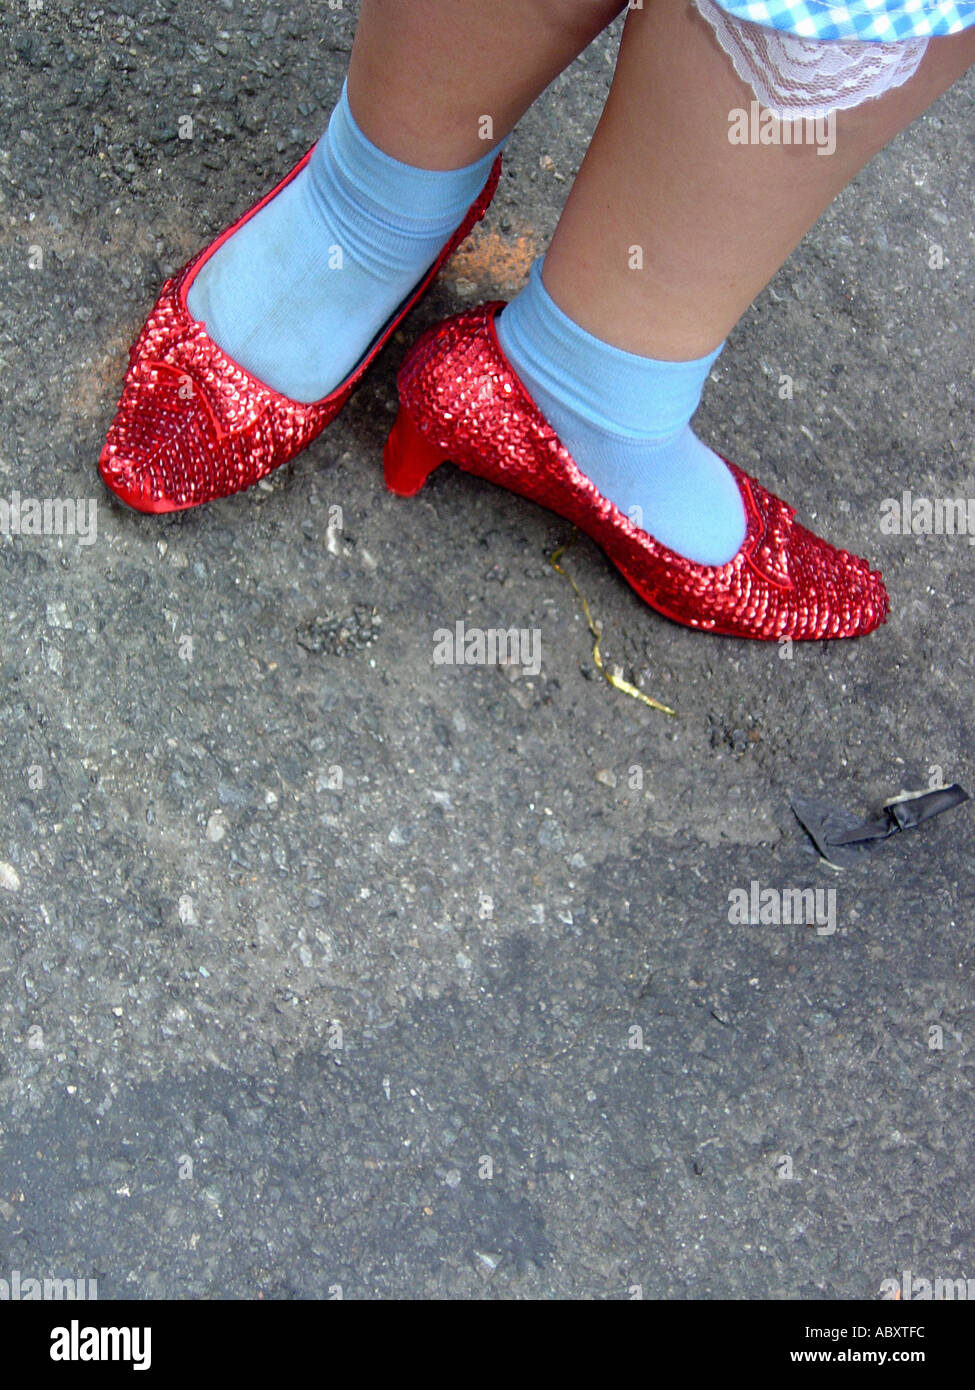 16a28f0579b Ruby Slippers on Feet of Person Ruby Slippers on Feet of Person Dressed as  Dorothy from Wizard of Oz at Gay Pride Parade 2005